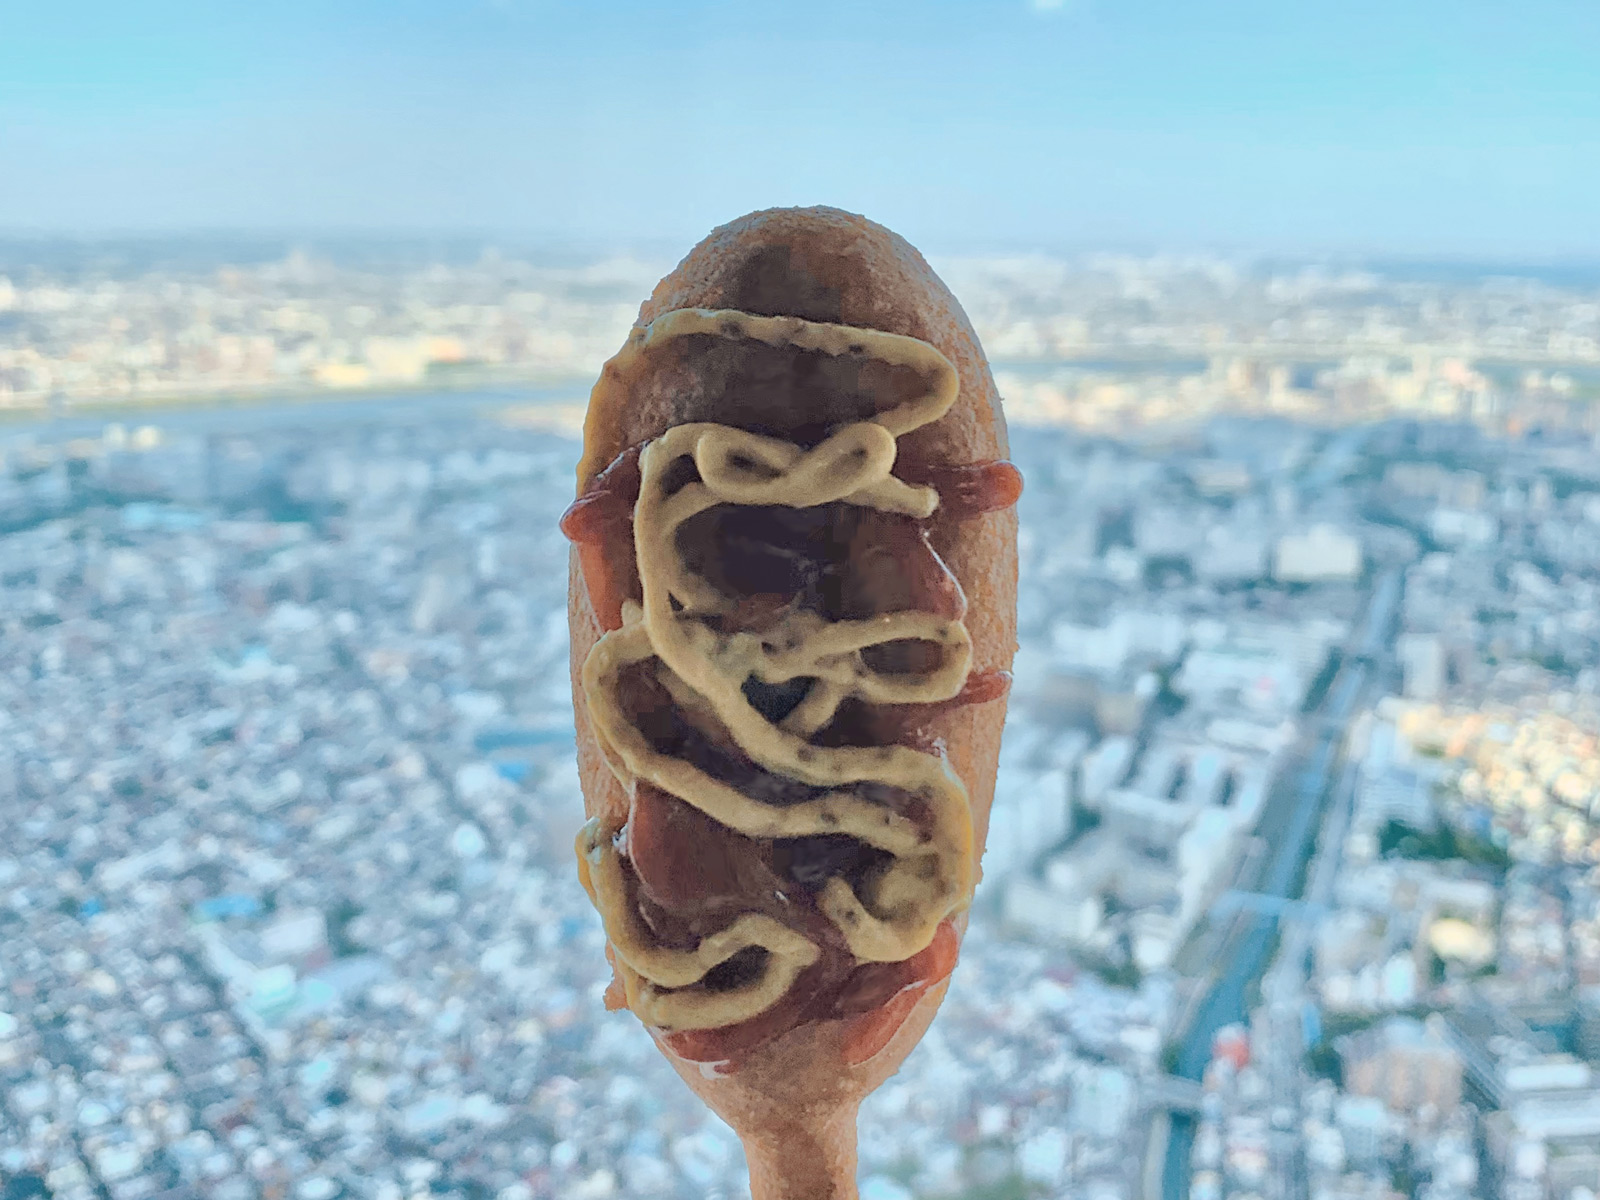 Snacking on the Go: Relish a Corndog with Ketchup and Mustard - Tokyo, Japan